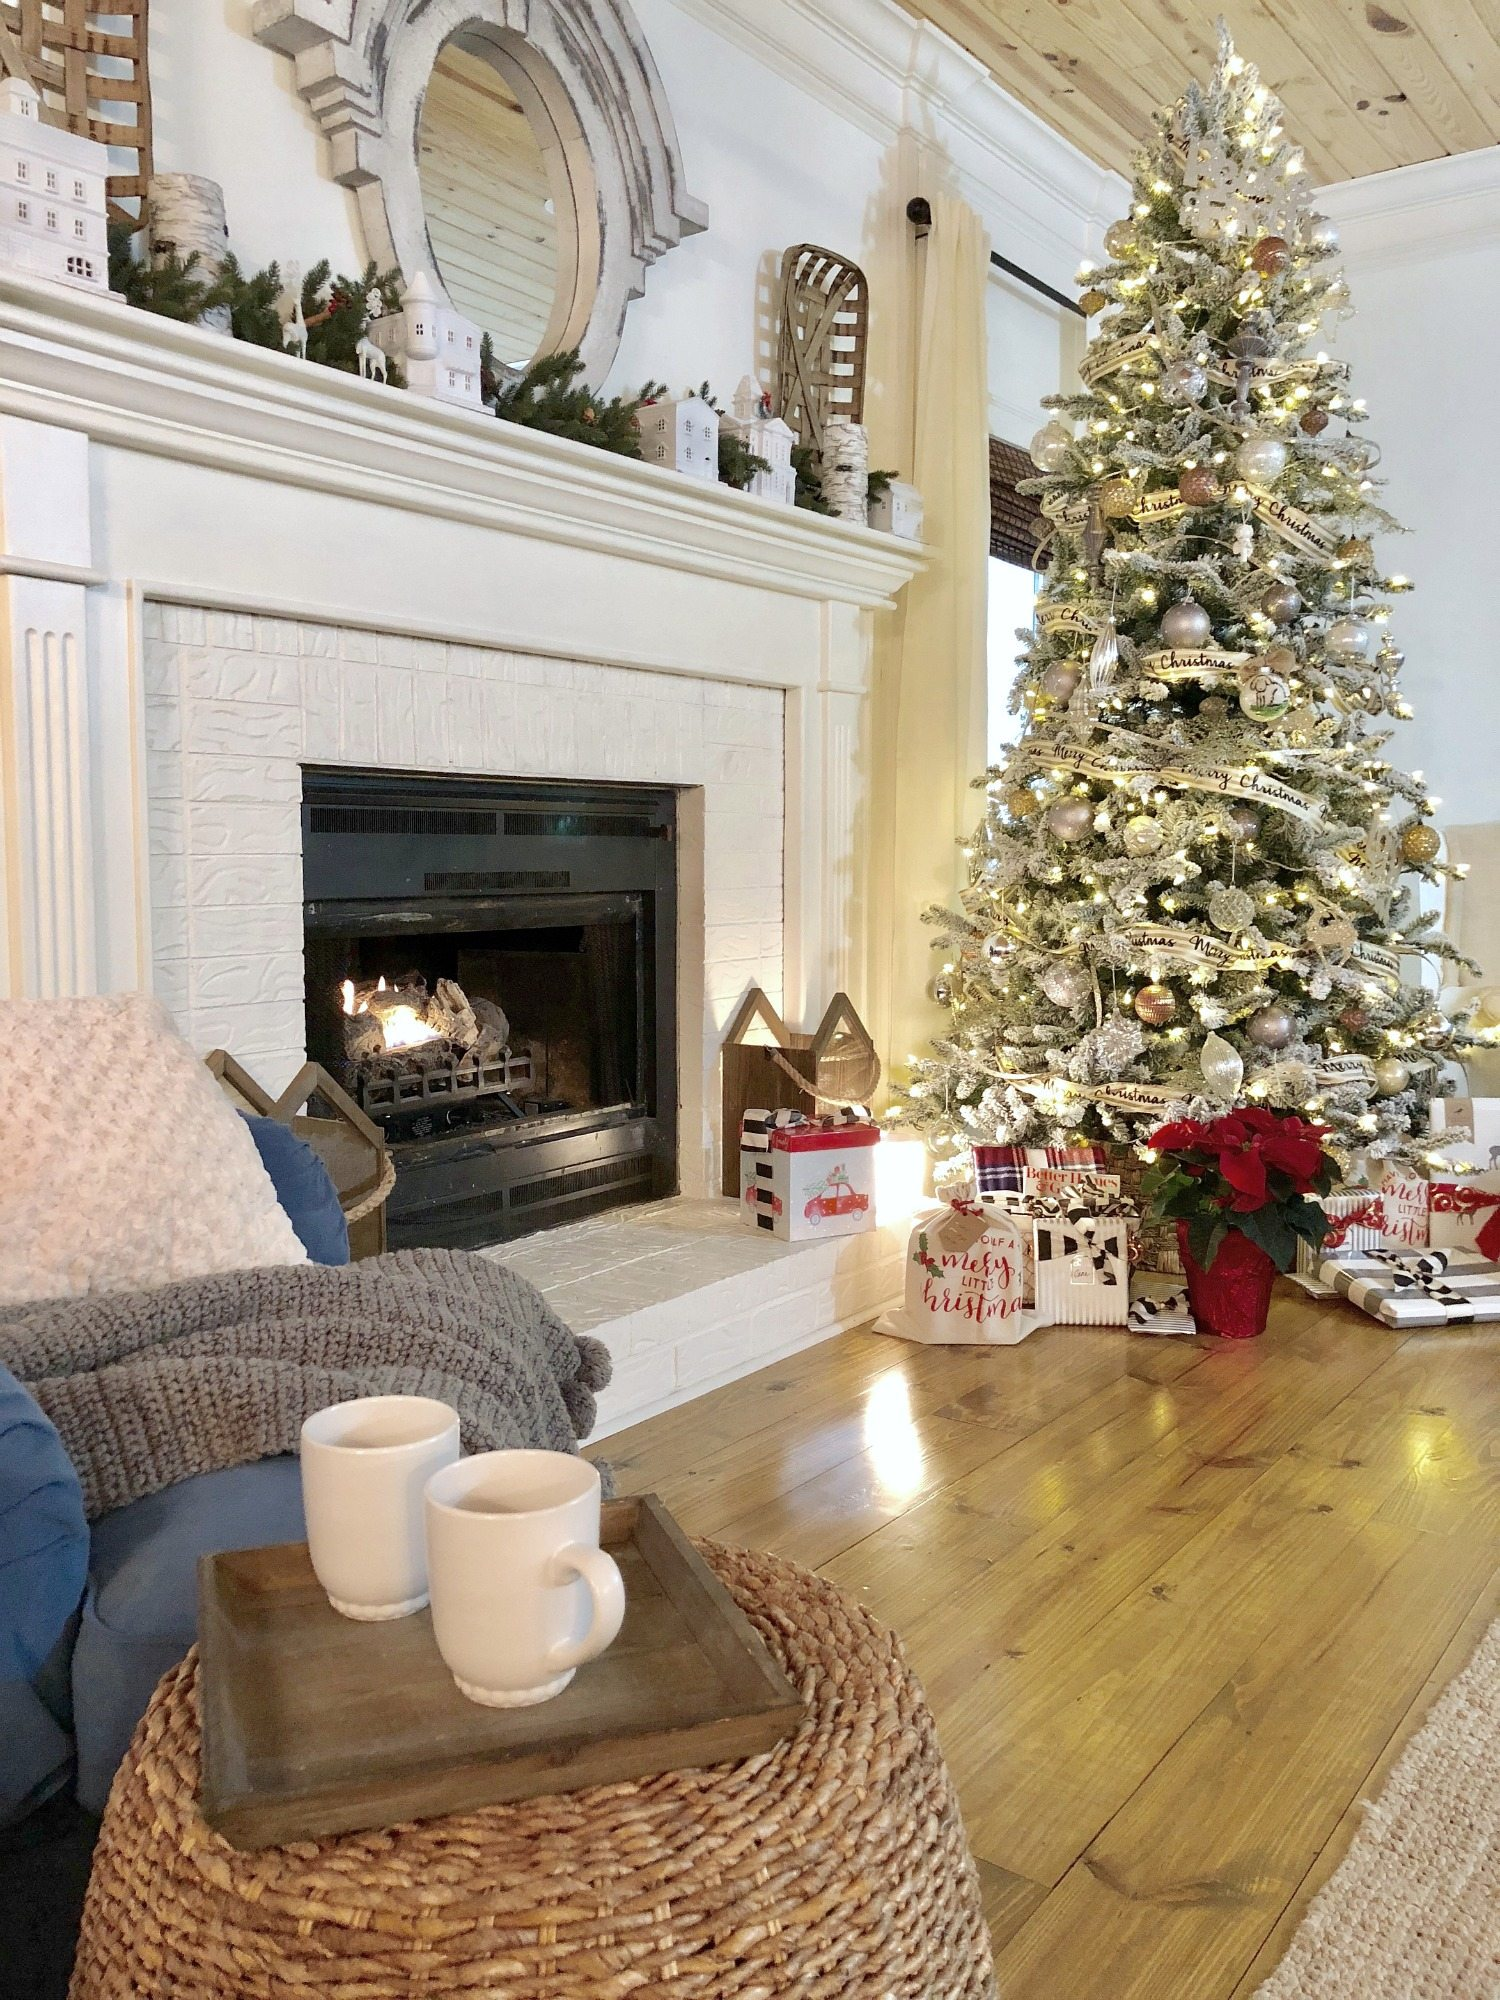 Coffee by the fire and Christmas tree